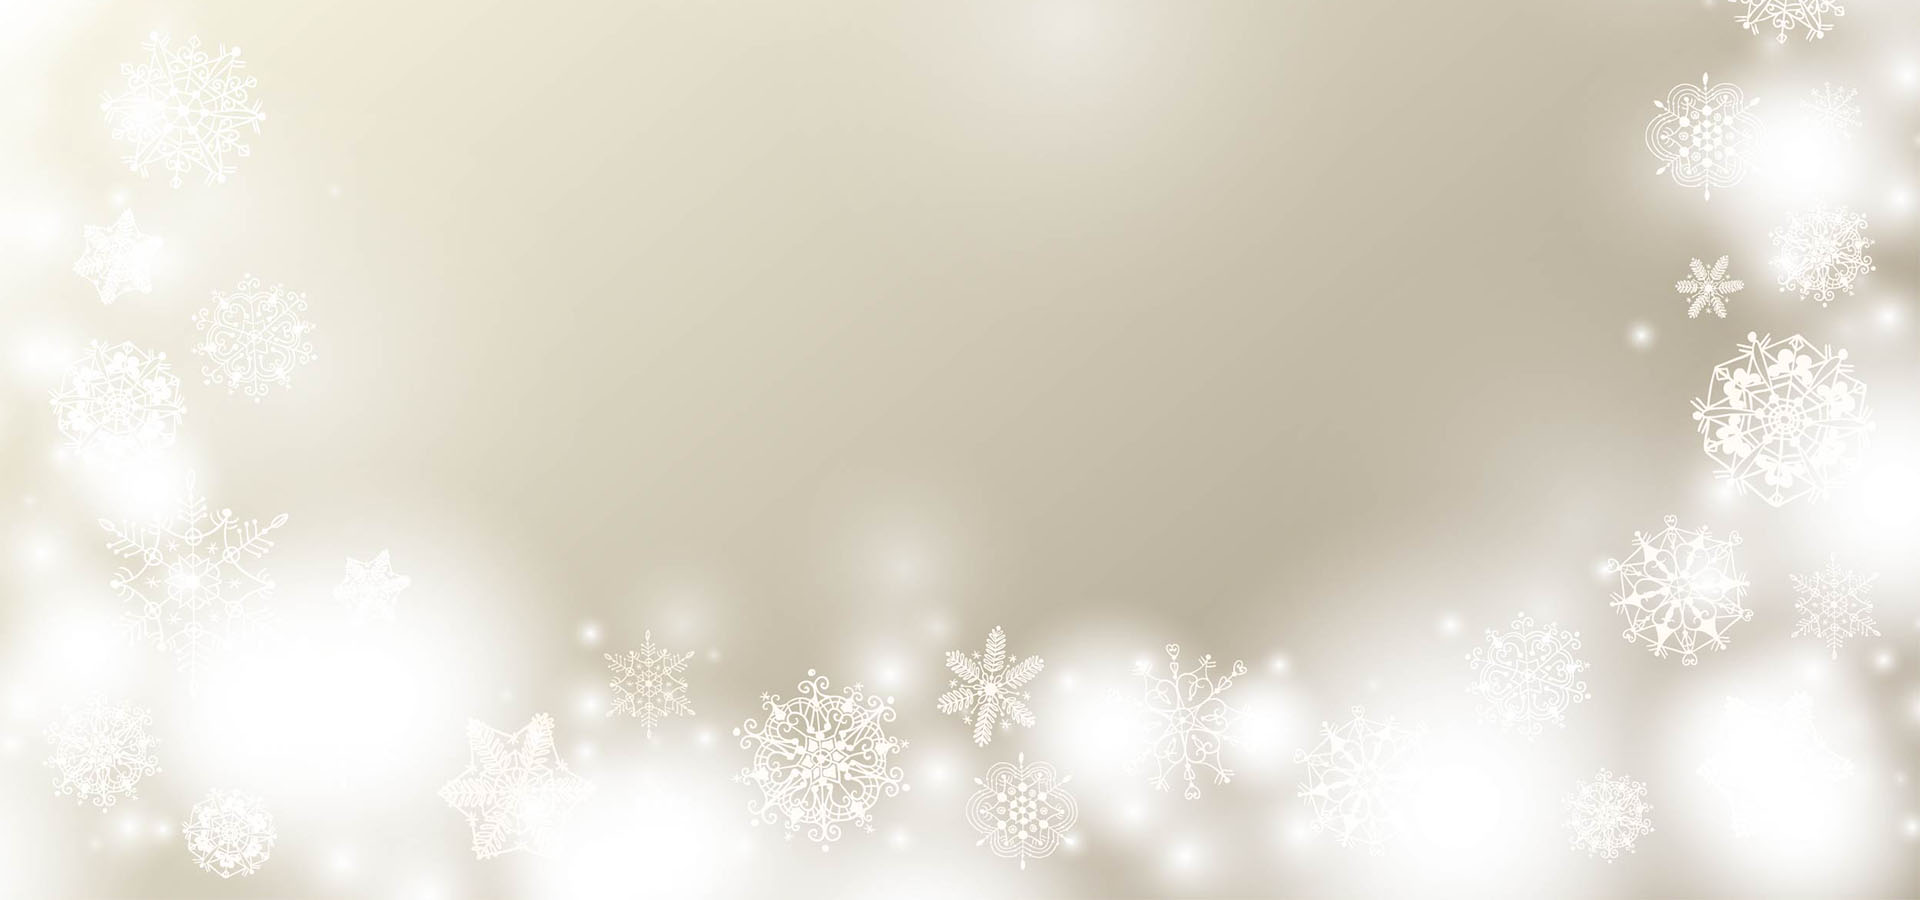 silver snowflake christmas background  silver  snowflake  christmas background image for free